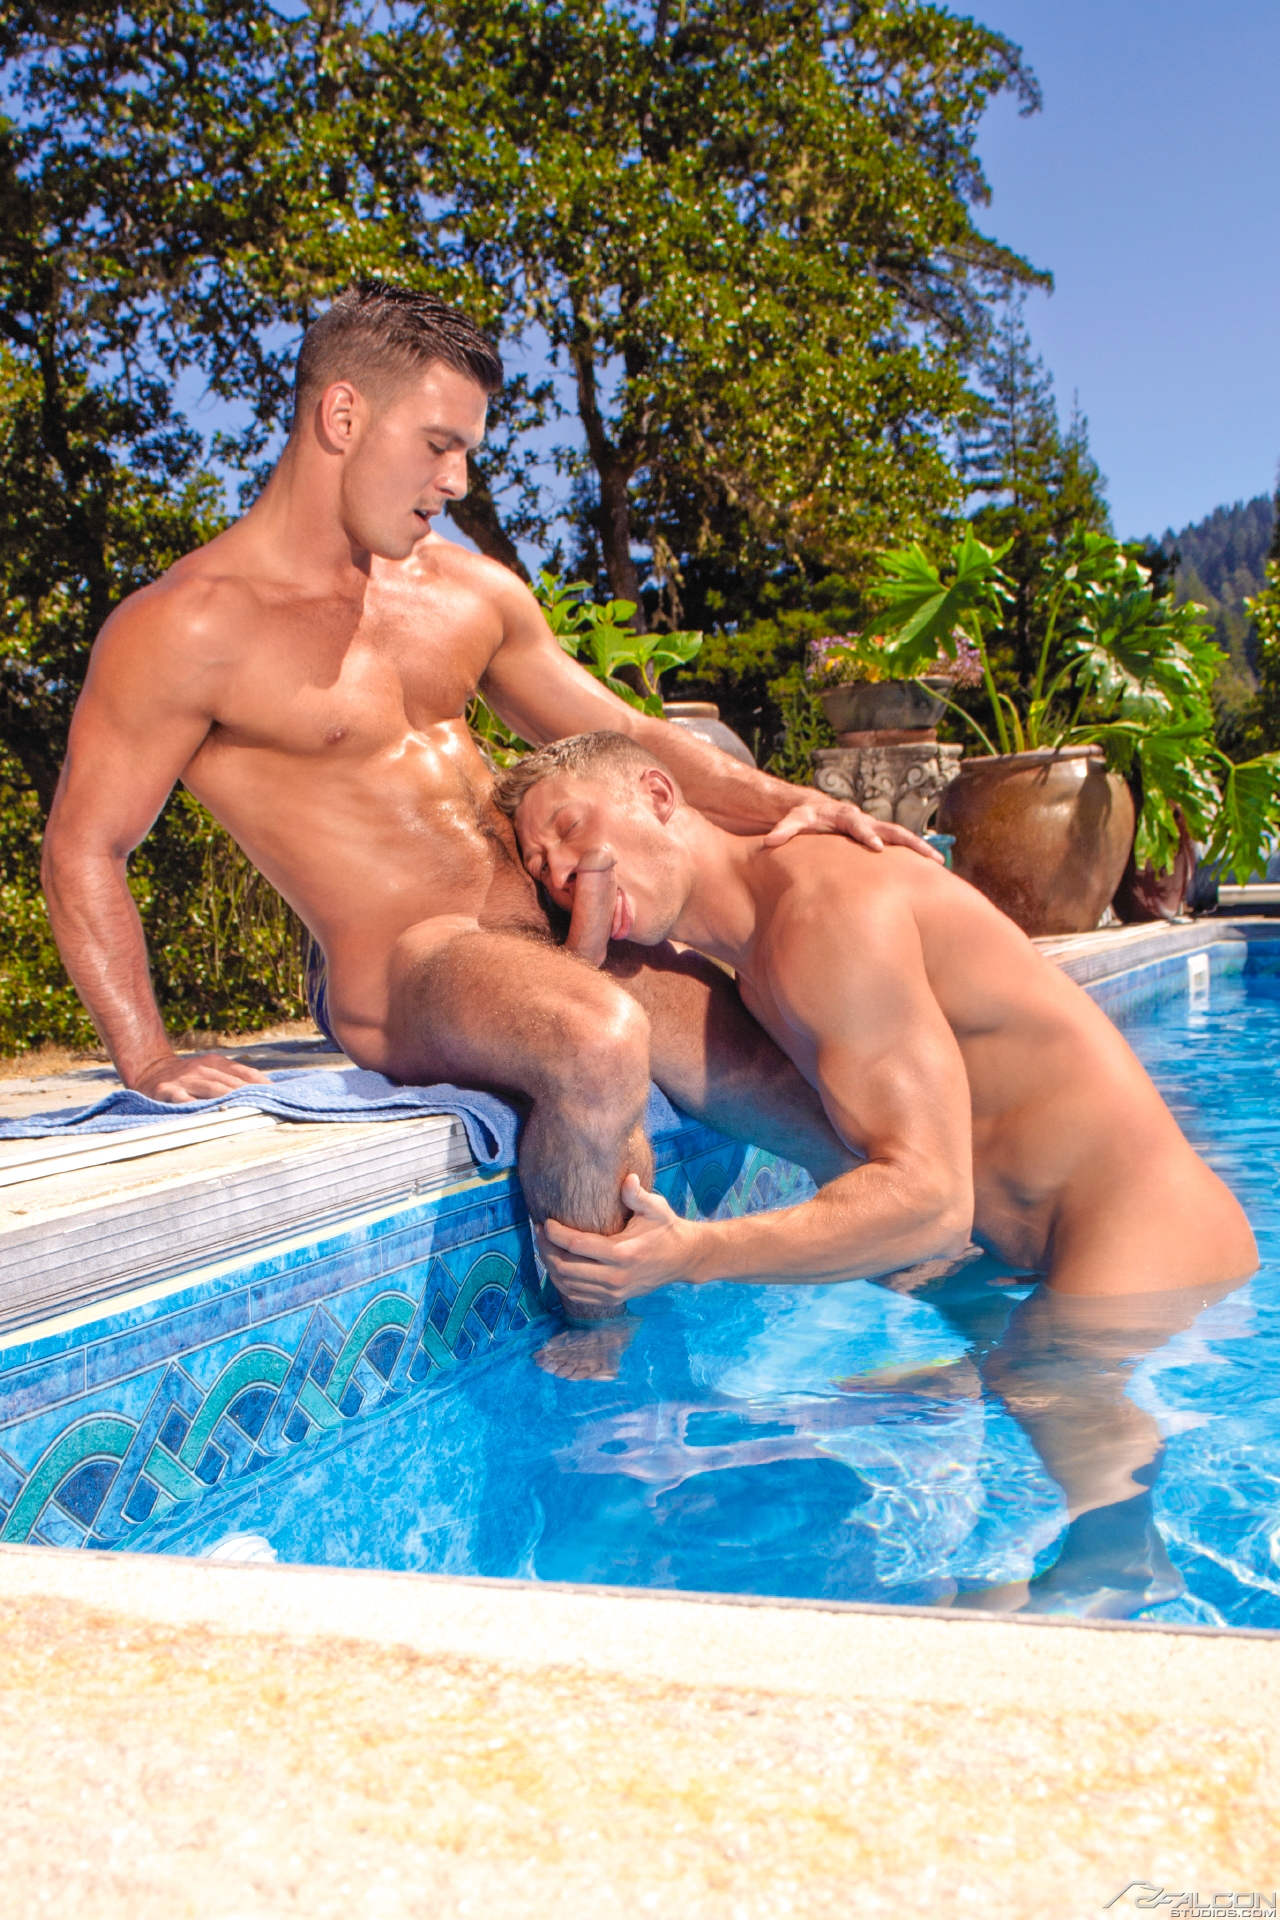 Anal gay pool sex and straight men licking 10